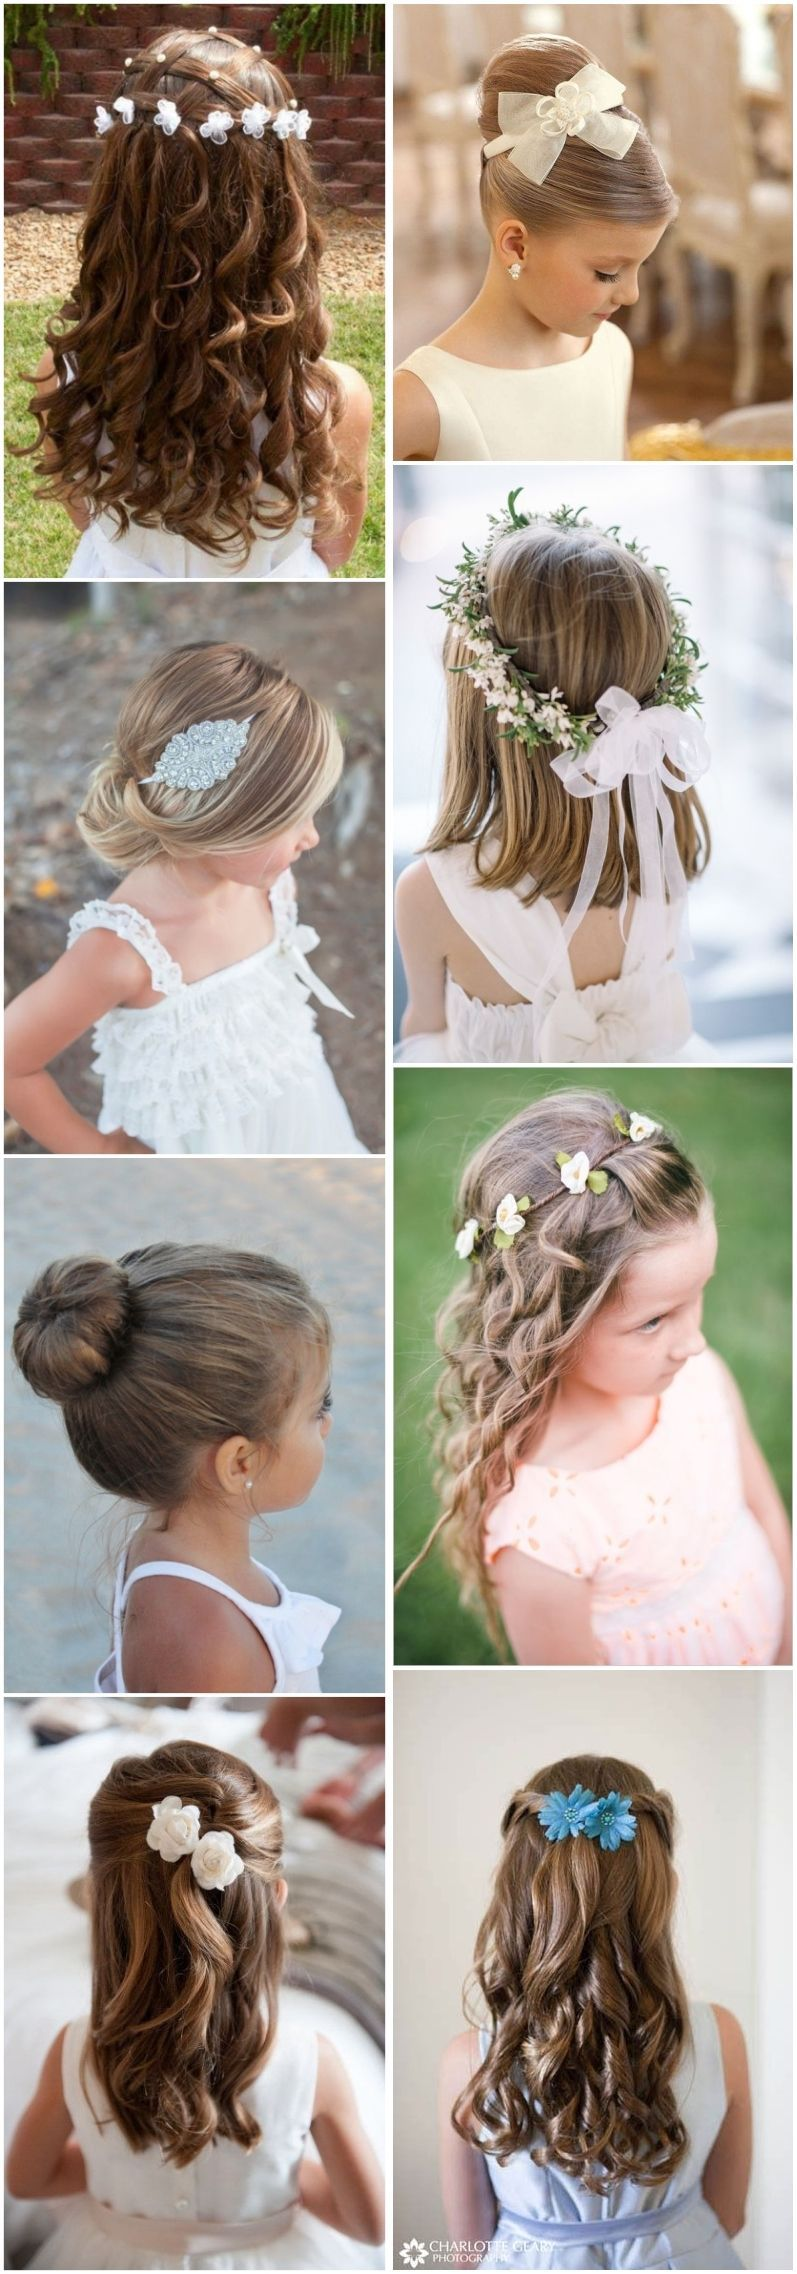 Cute little girl hairstylesupdos braids waterfall